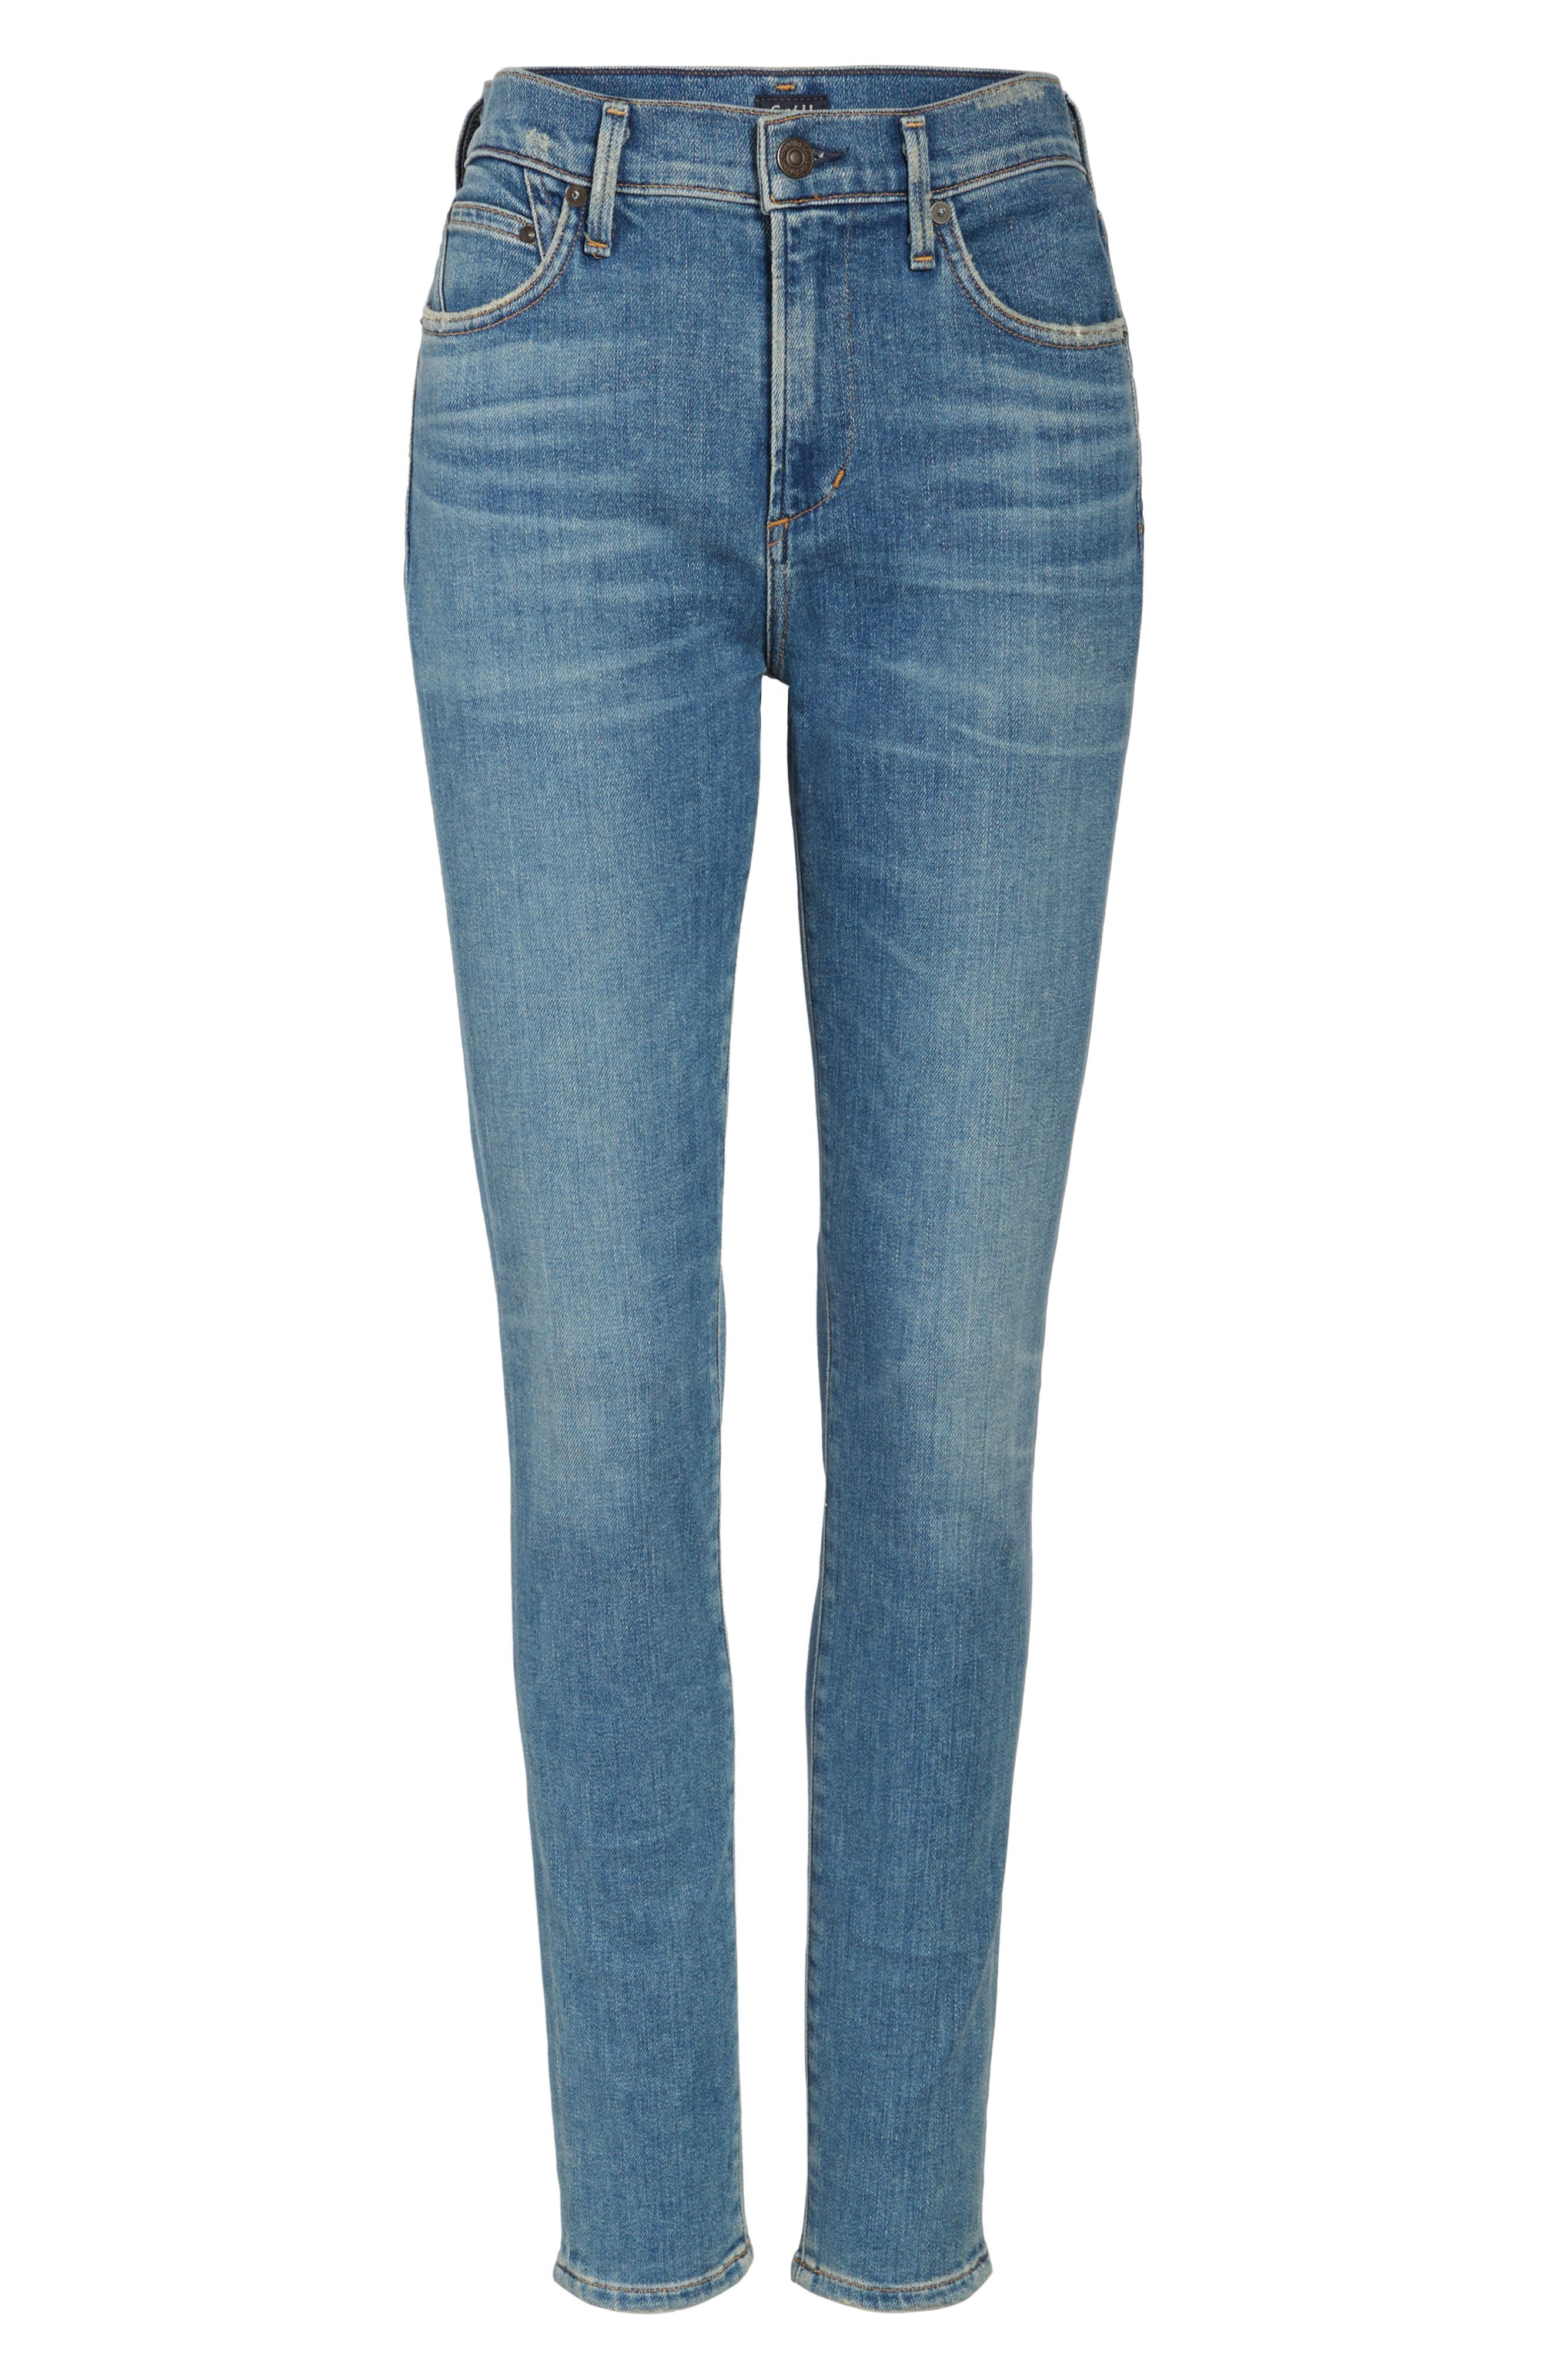 Rocket High Waist Skinny Jeans,                             Alternate thumbnail 6, color,